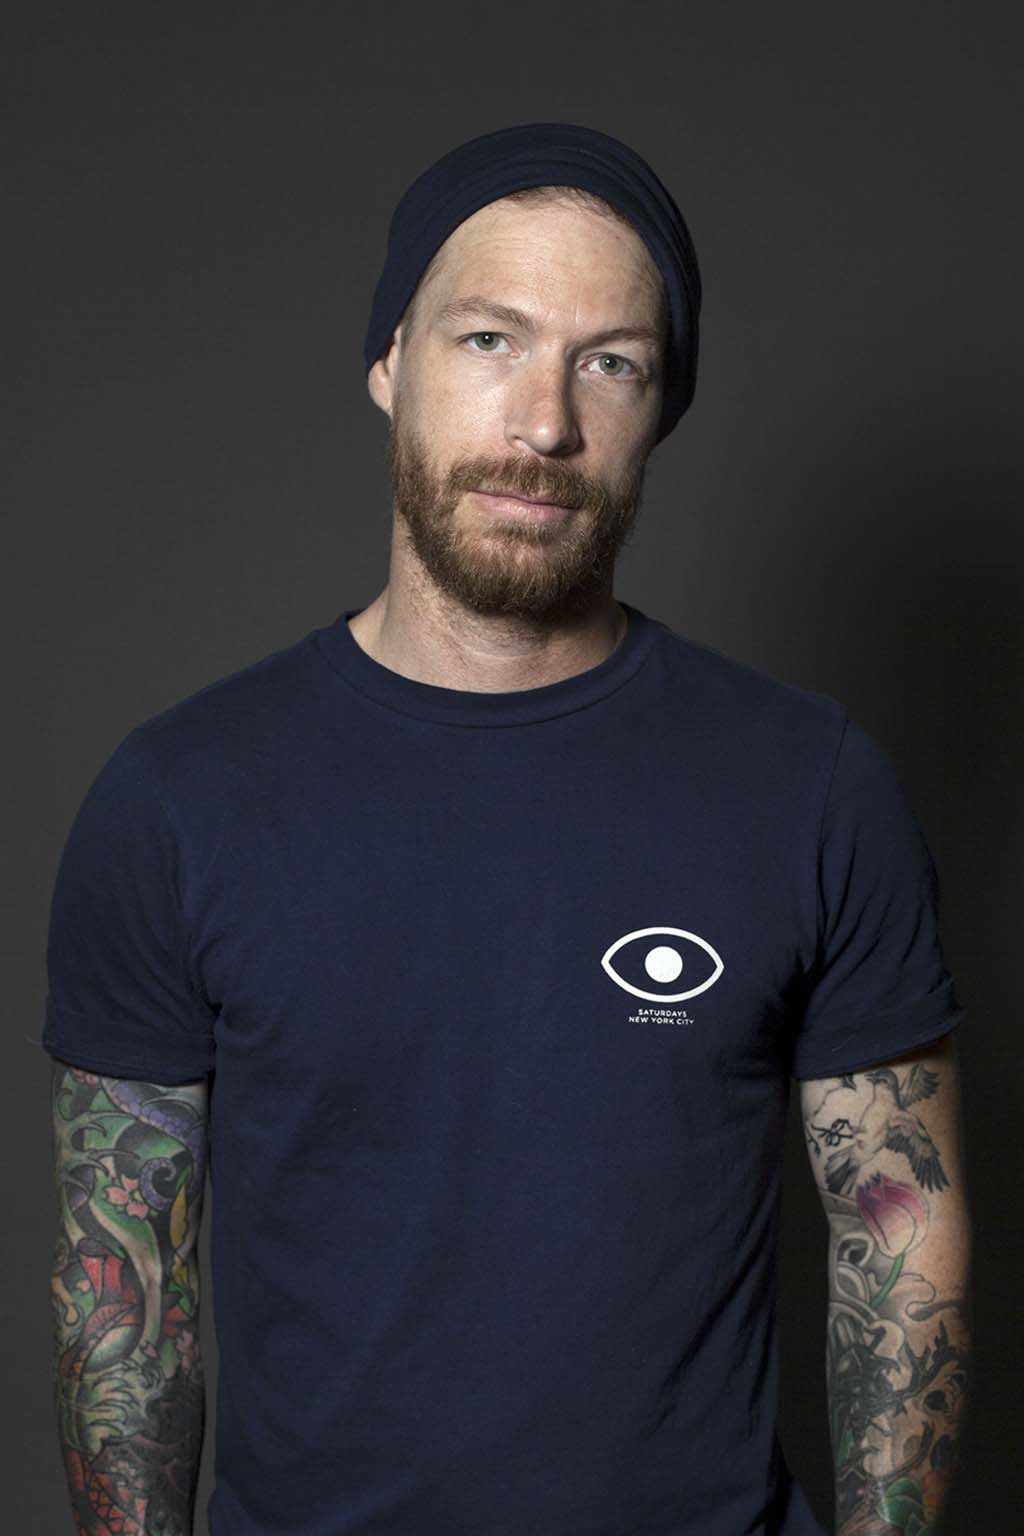 Navy Men's GEEG Beanie featured on Man with Tattoos